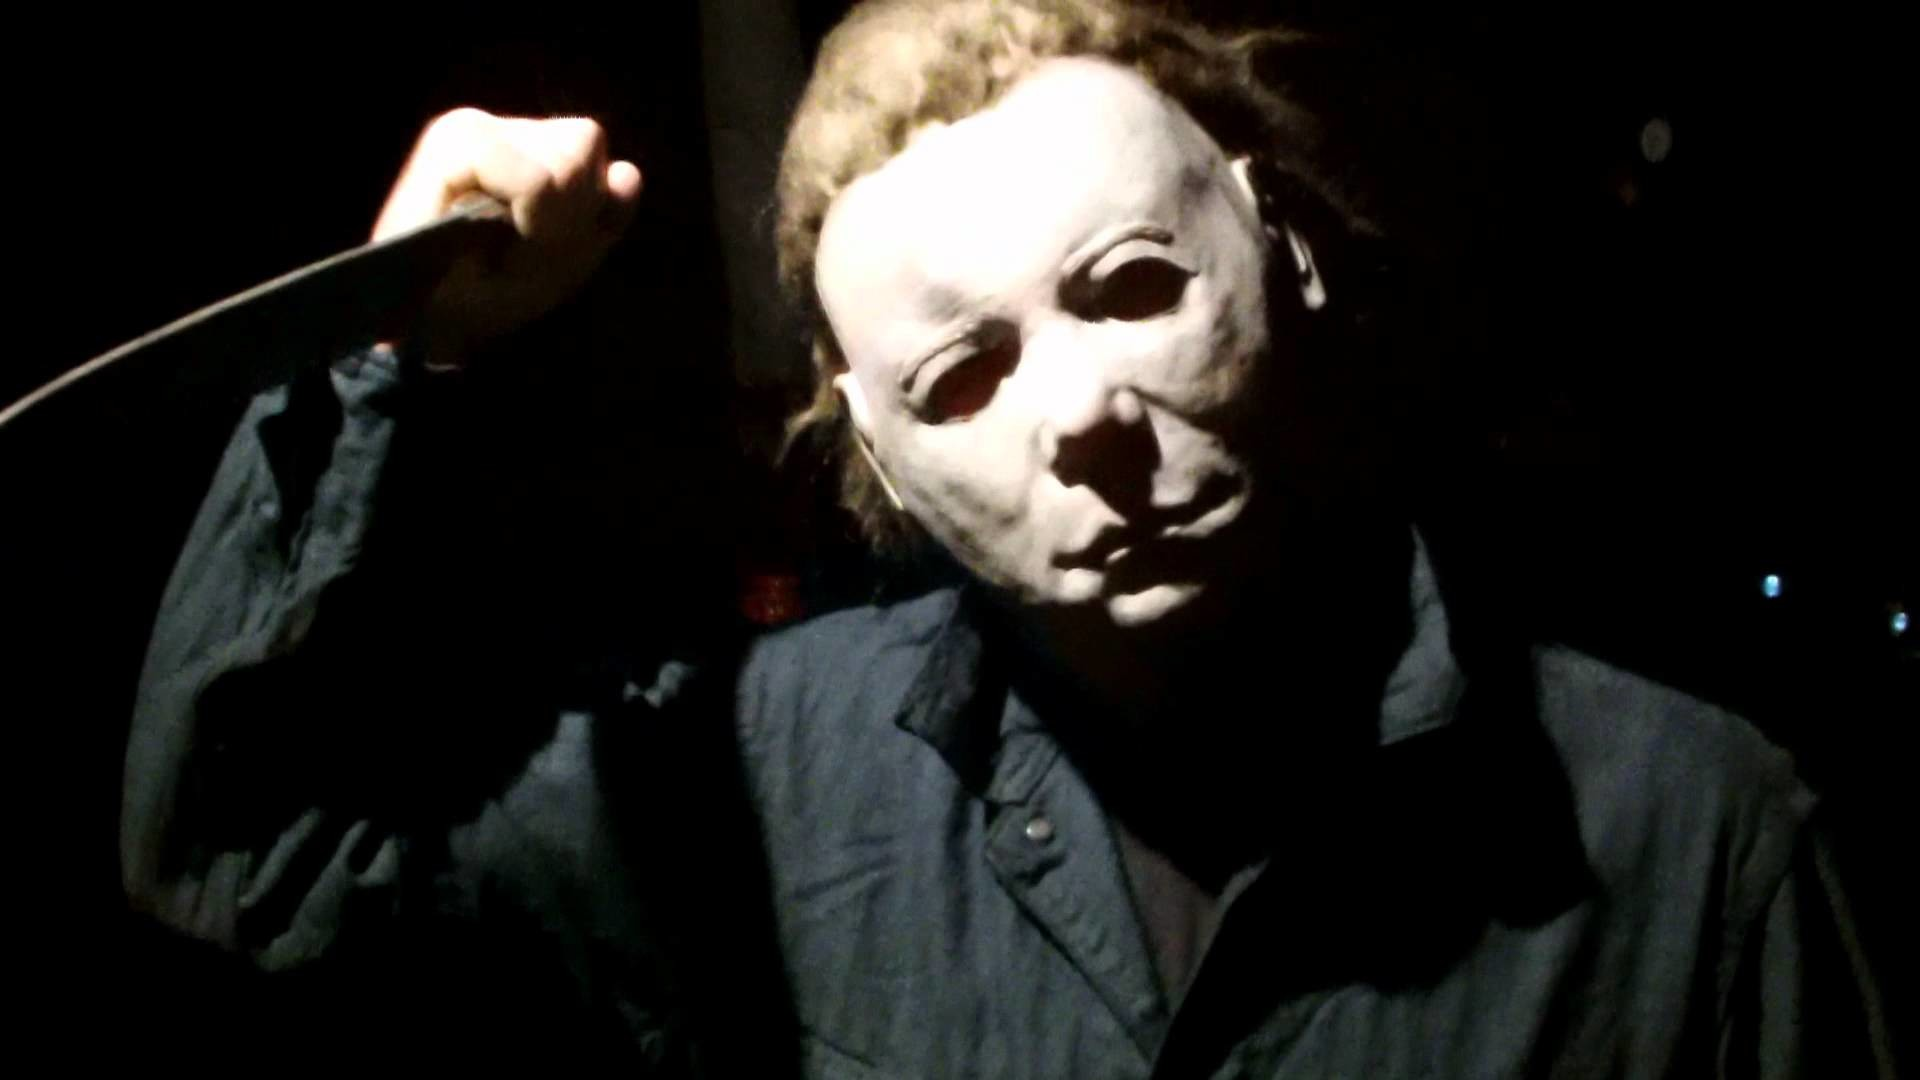 … michael myers wallpapers high quality download free …